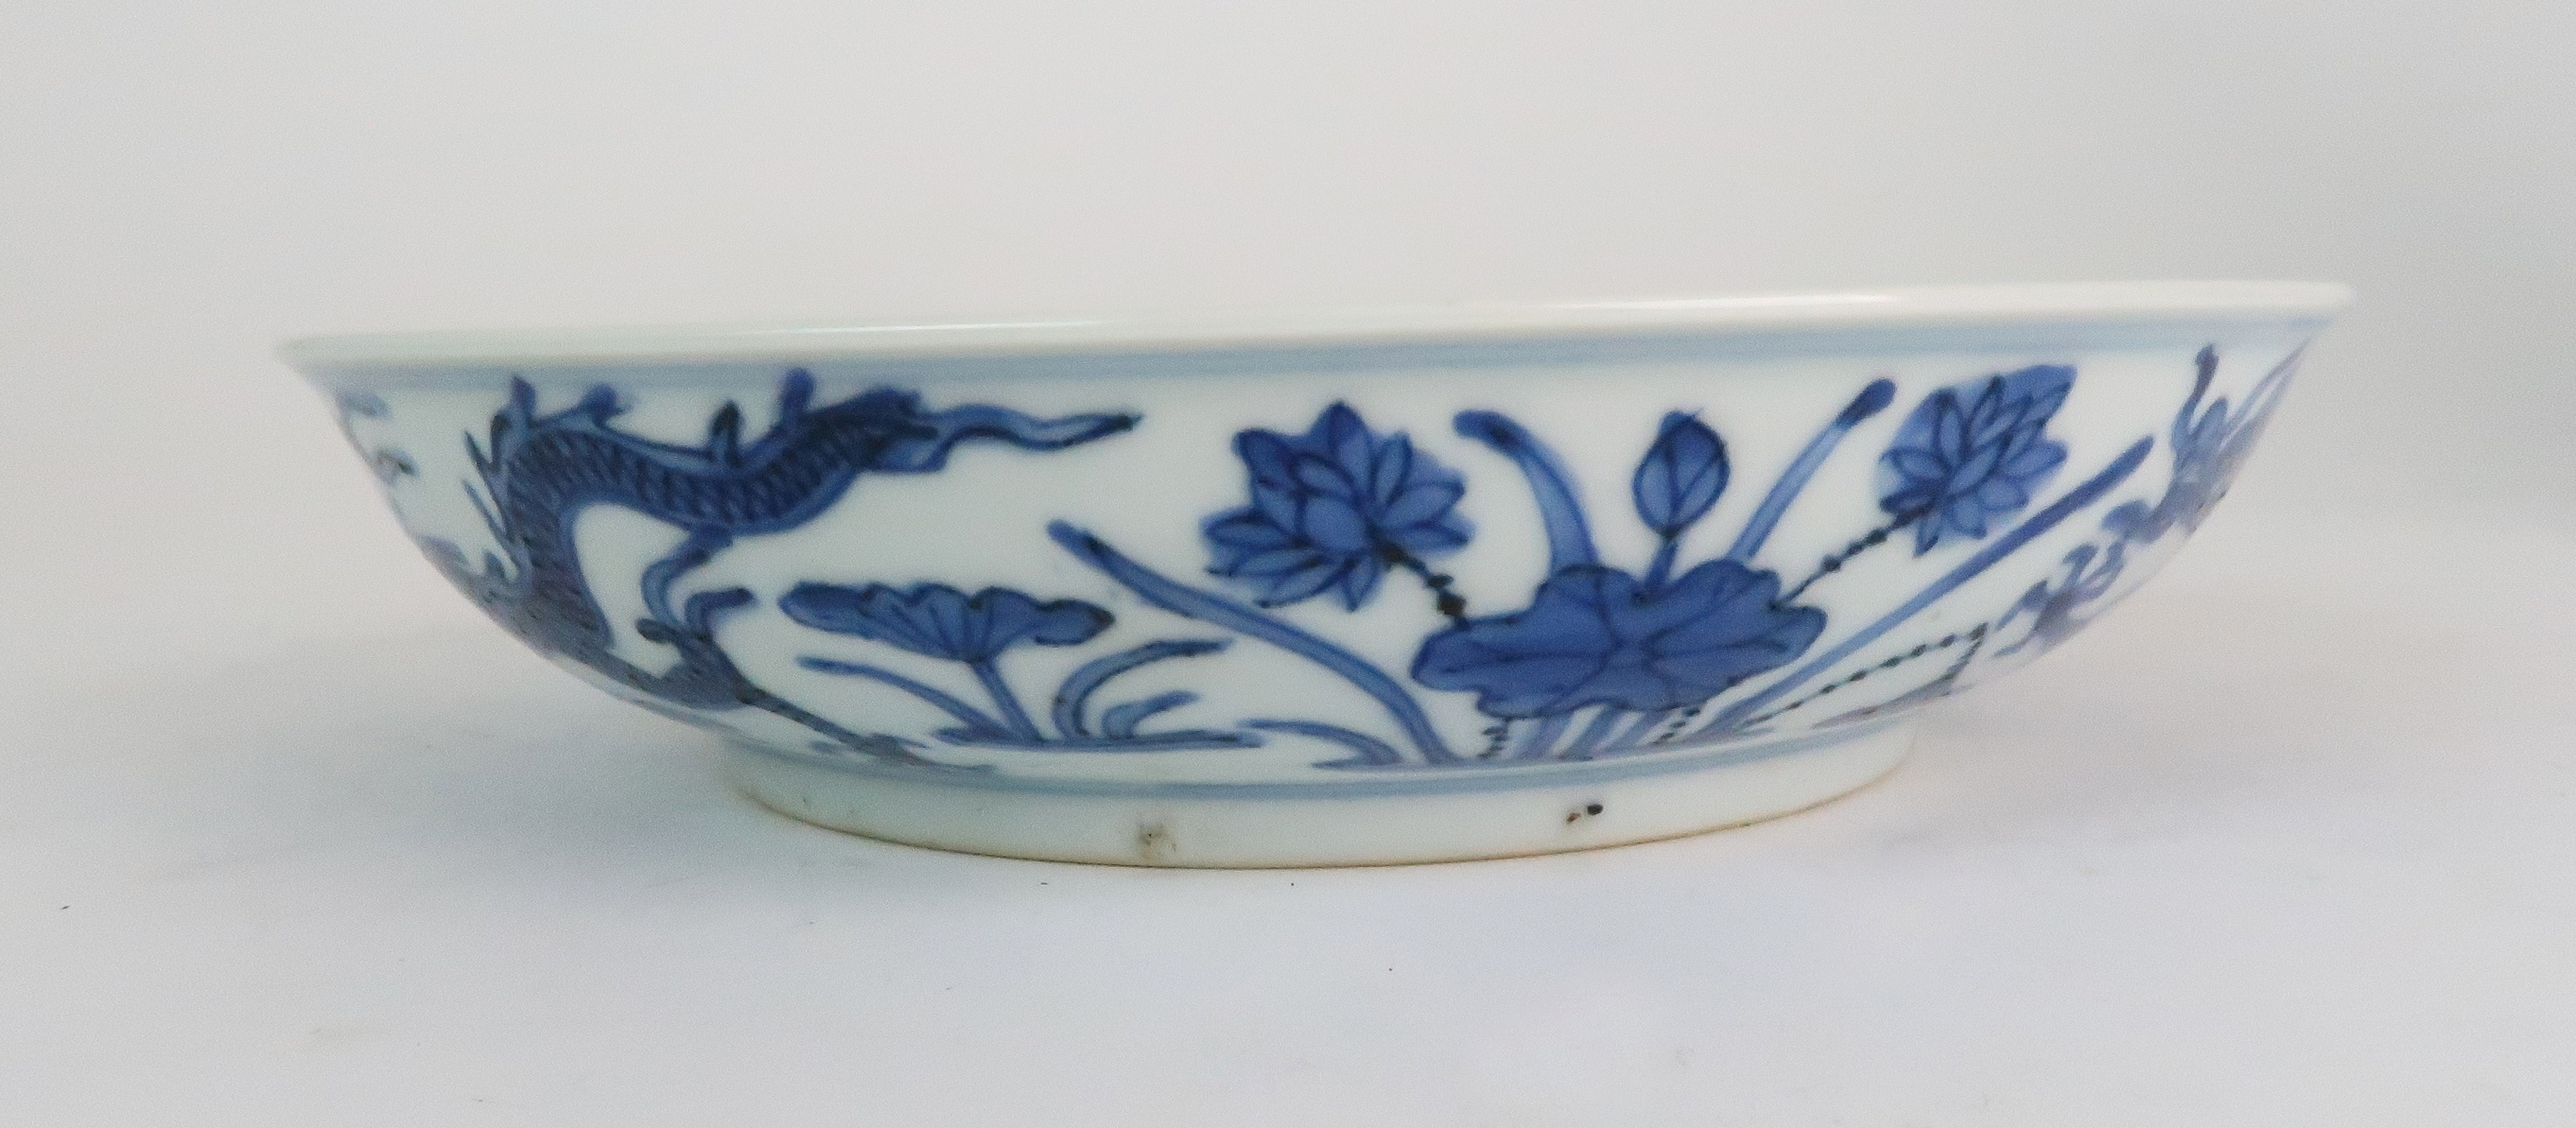 A CHINESE BLUE AND WHITE DISH painted with dragons amongst aquatic foliage, within a scrolling - Image 2 of 6